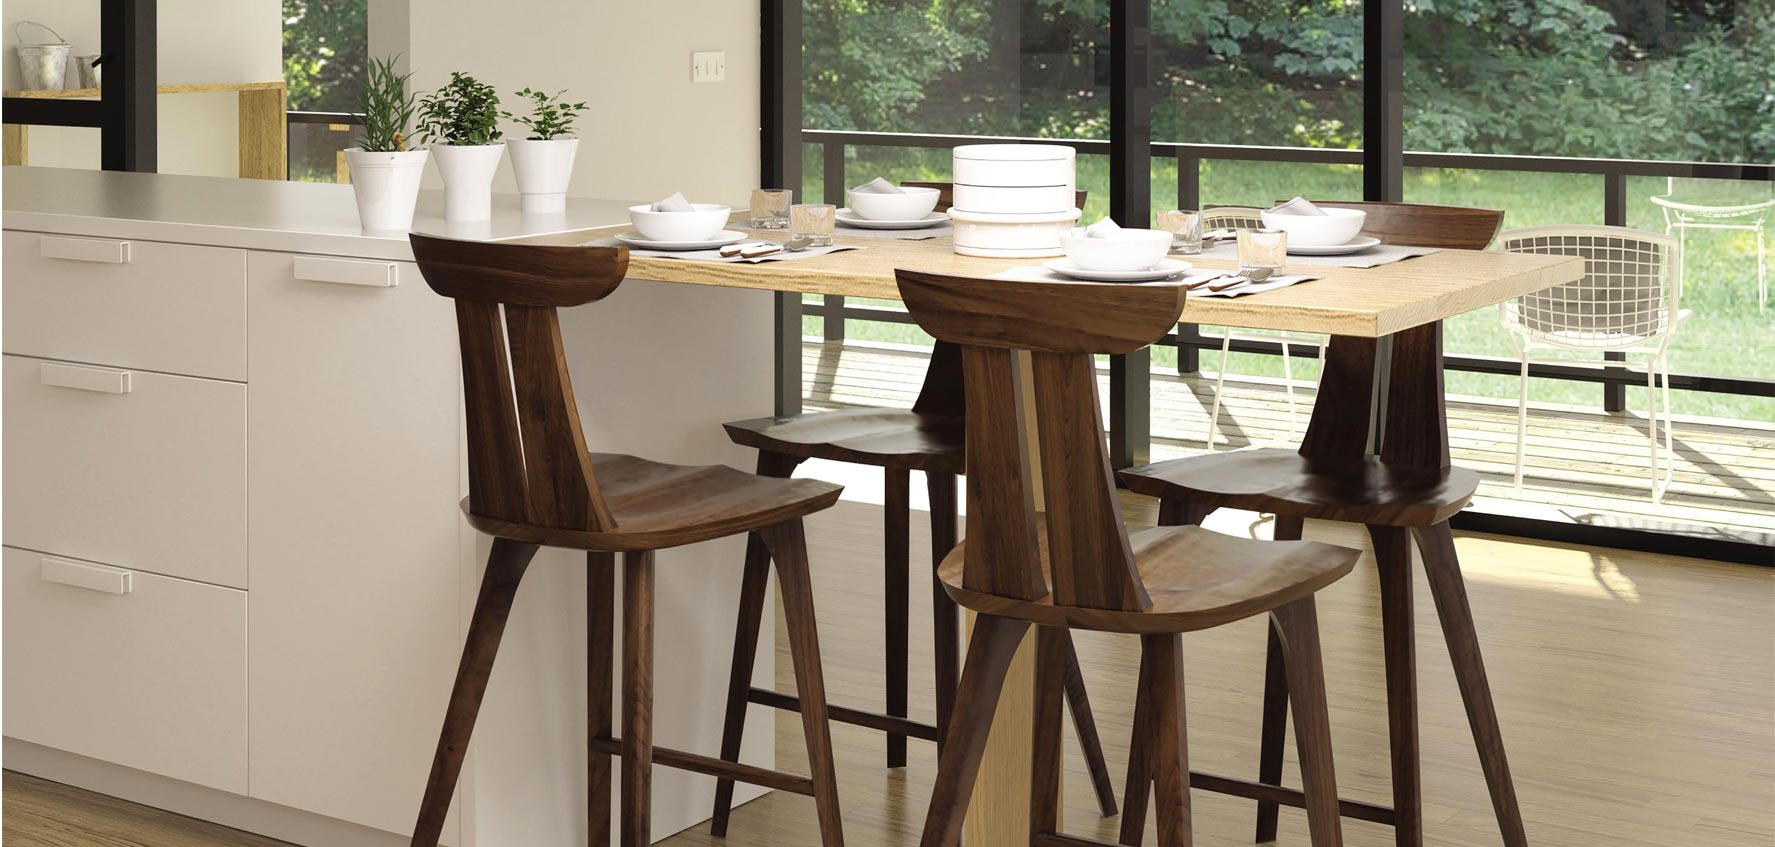 Modern Counter Chairs & Bar Stools